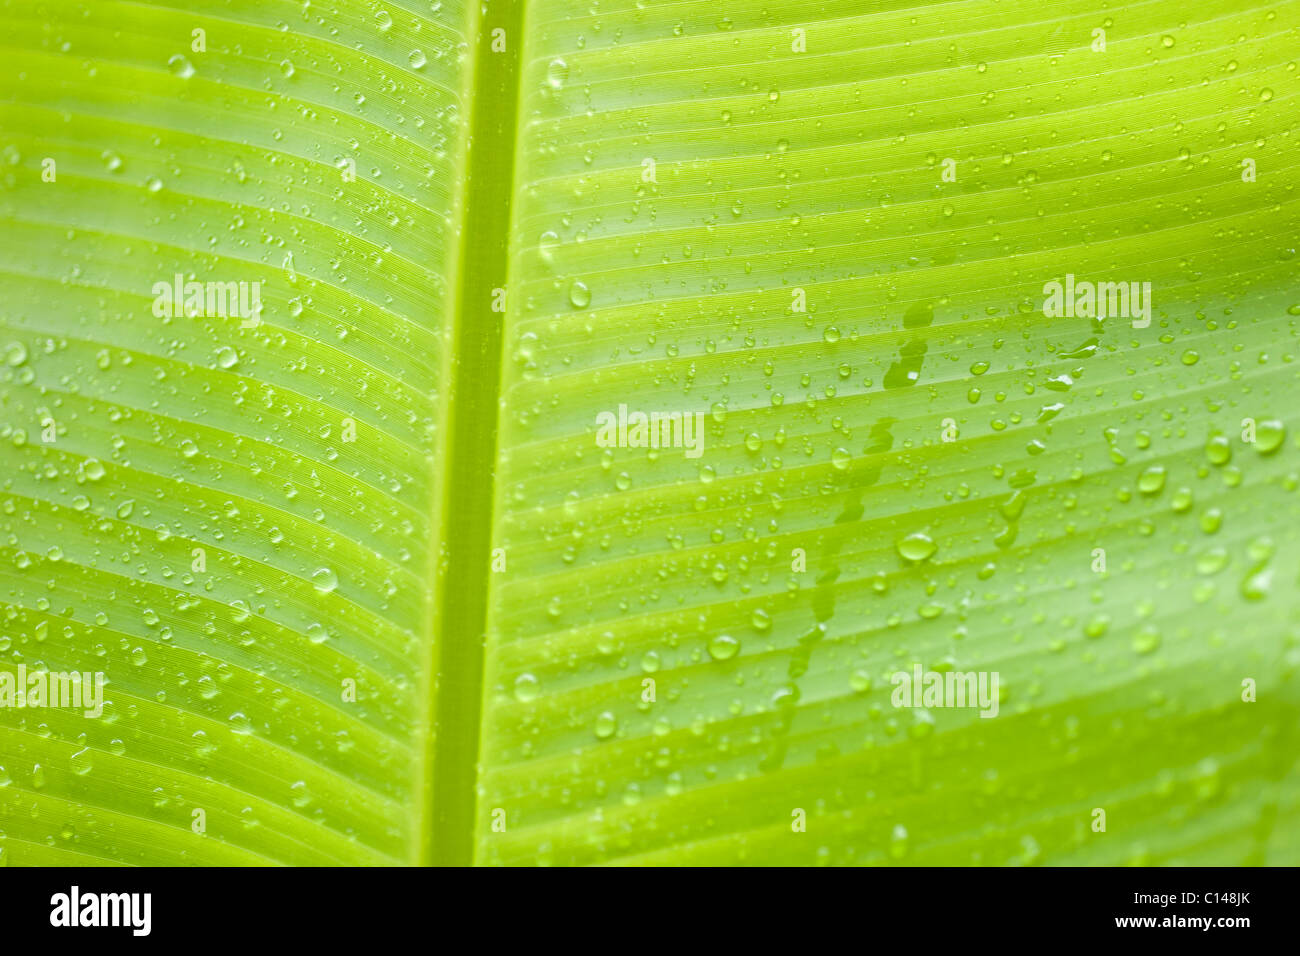 Close up de feuille de bananier, forêt amazonienne, en Amérique du Sud Photo Stock